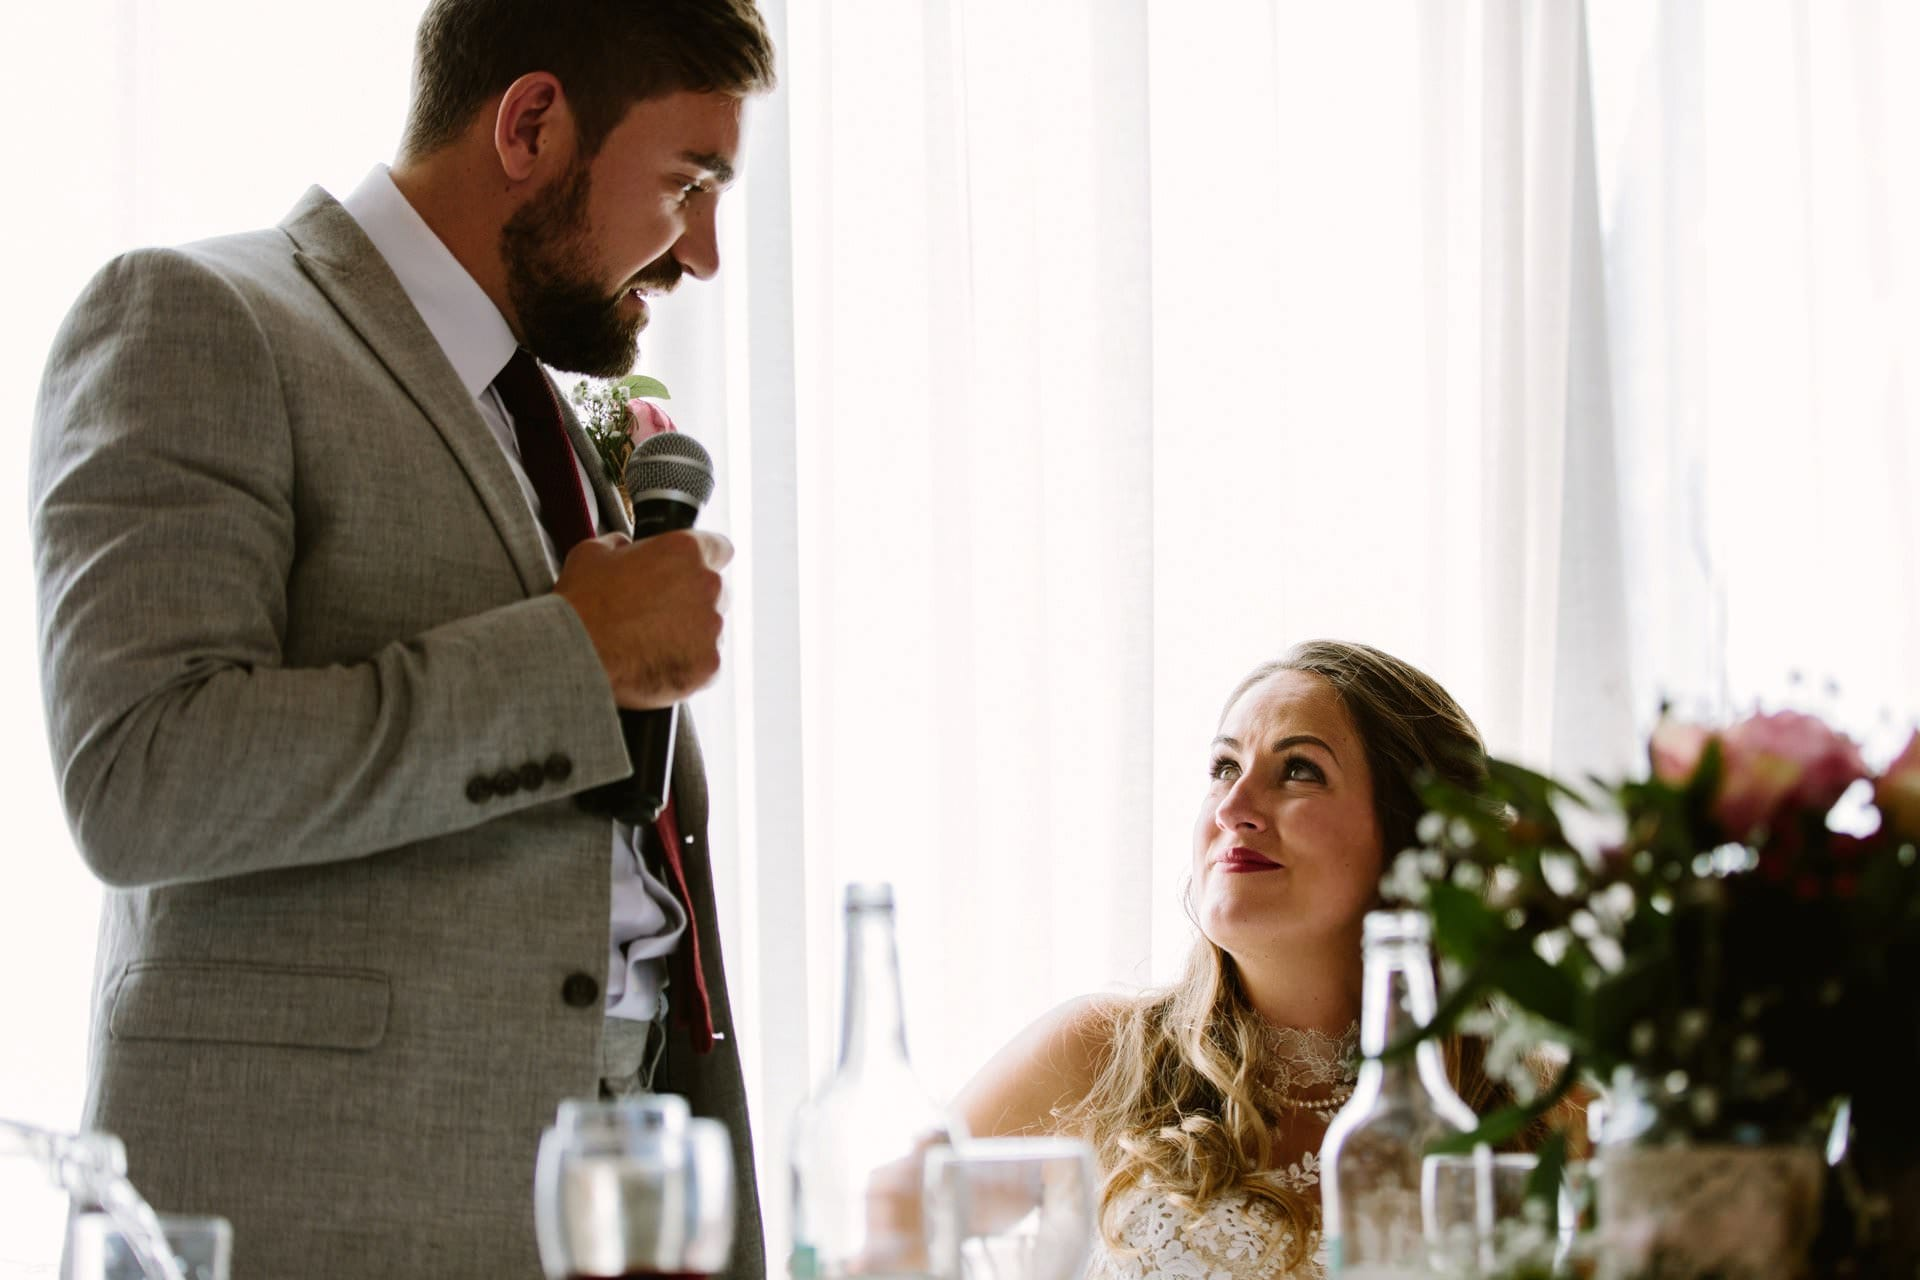 Bride looks at groom during his speech to her